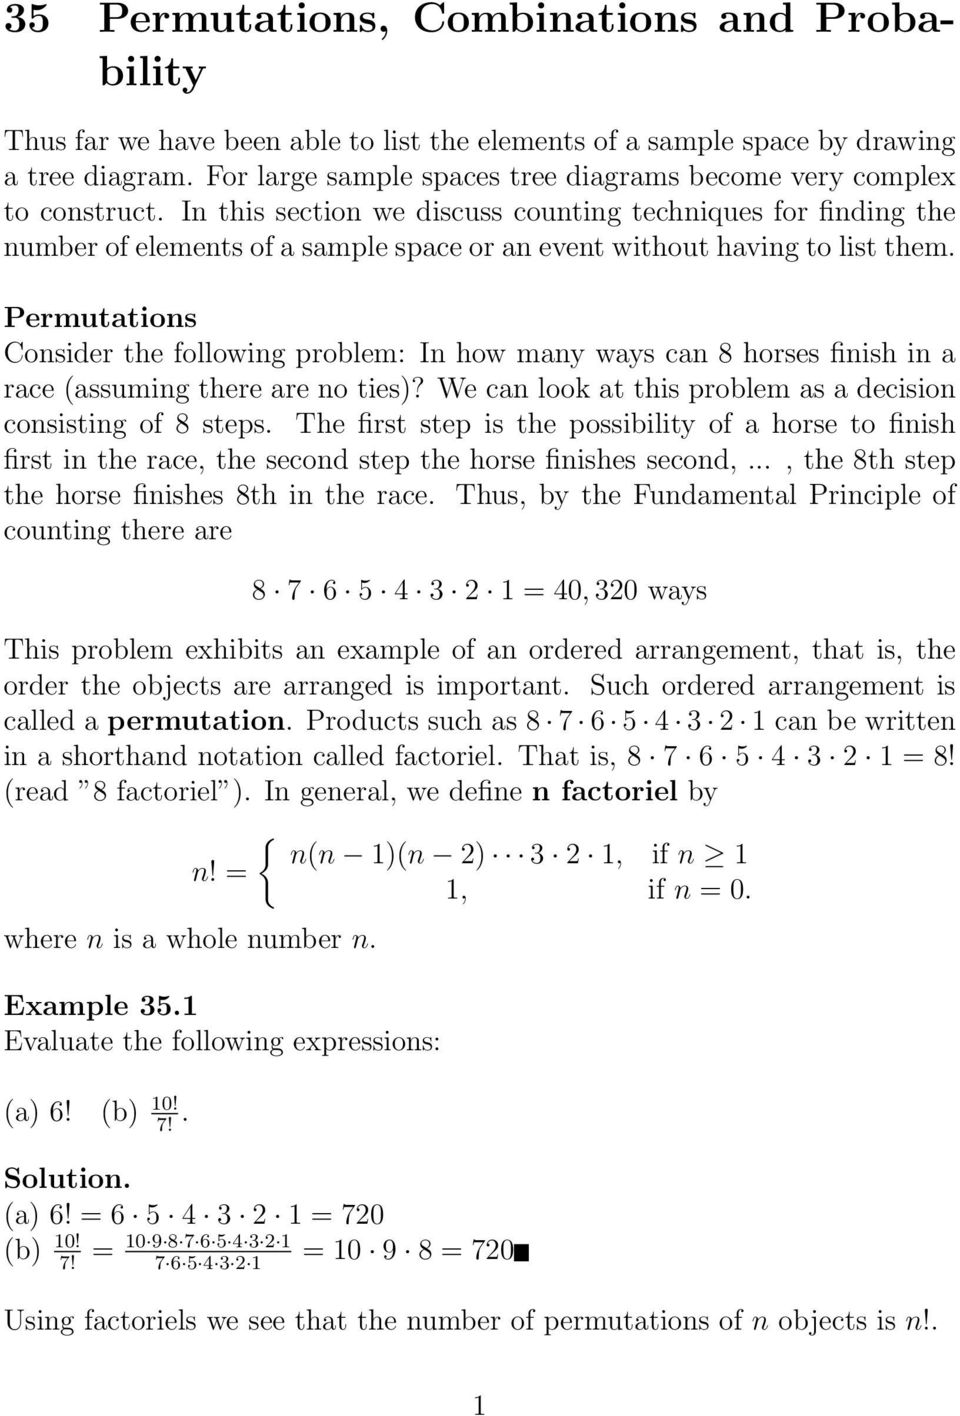 35 Permutations, Combinations and Probability - PDF